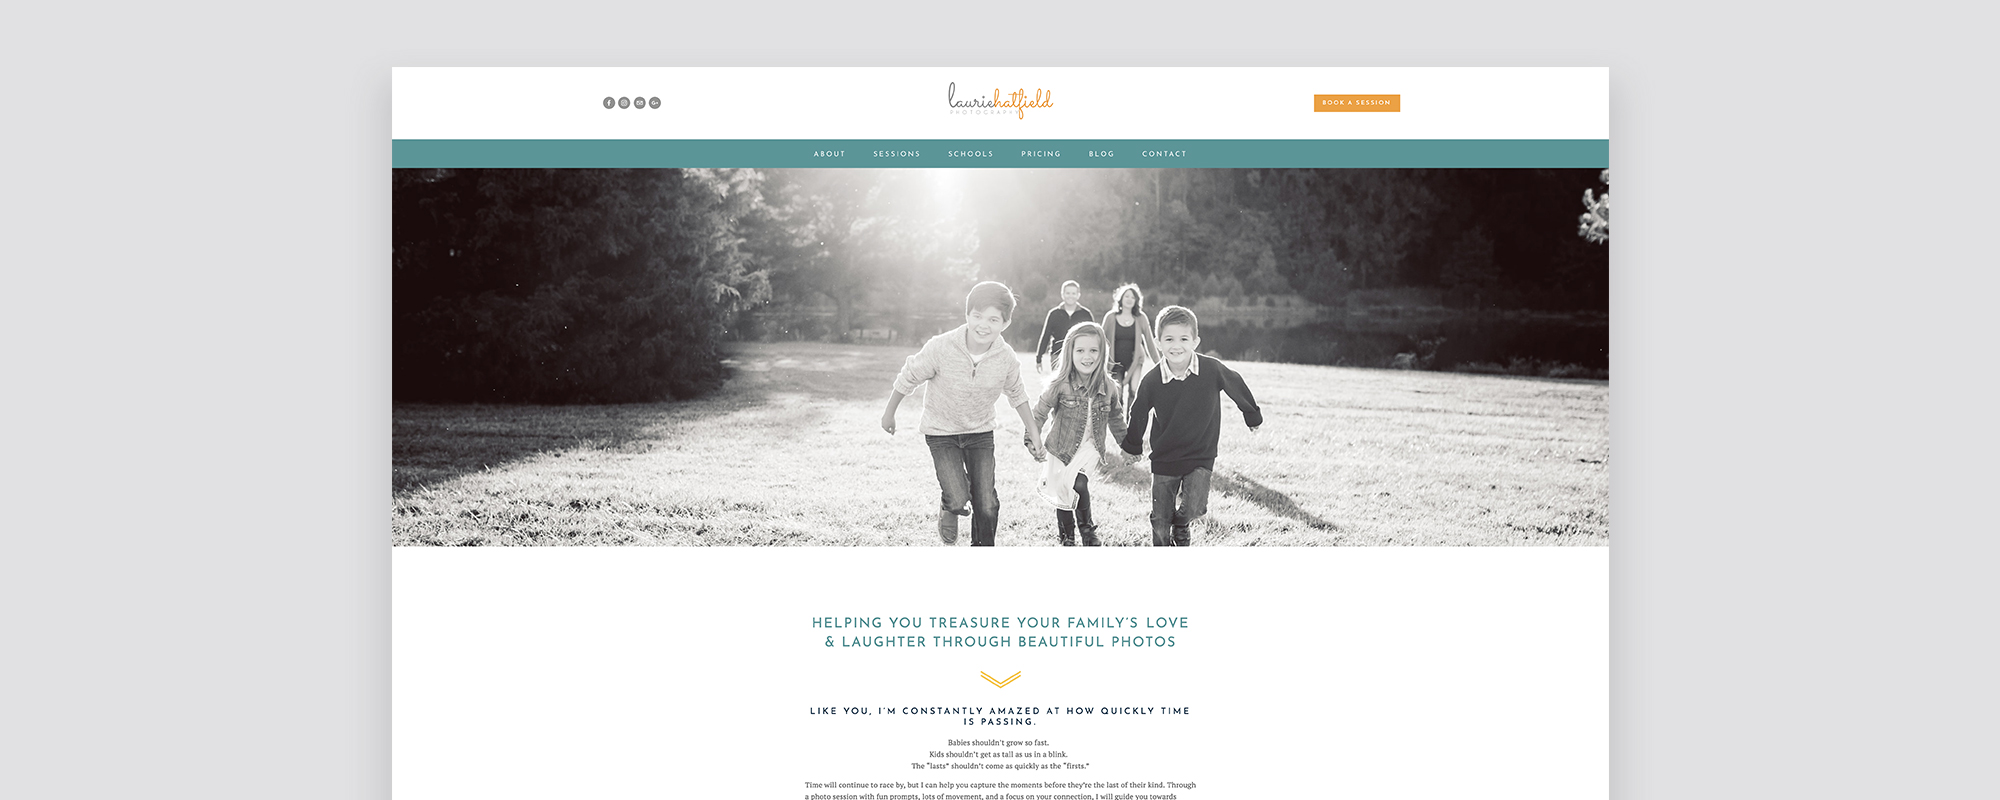 Laurie Hatfield Photography Alabama Squarespace Website Design.jpg